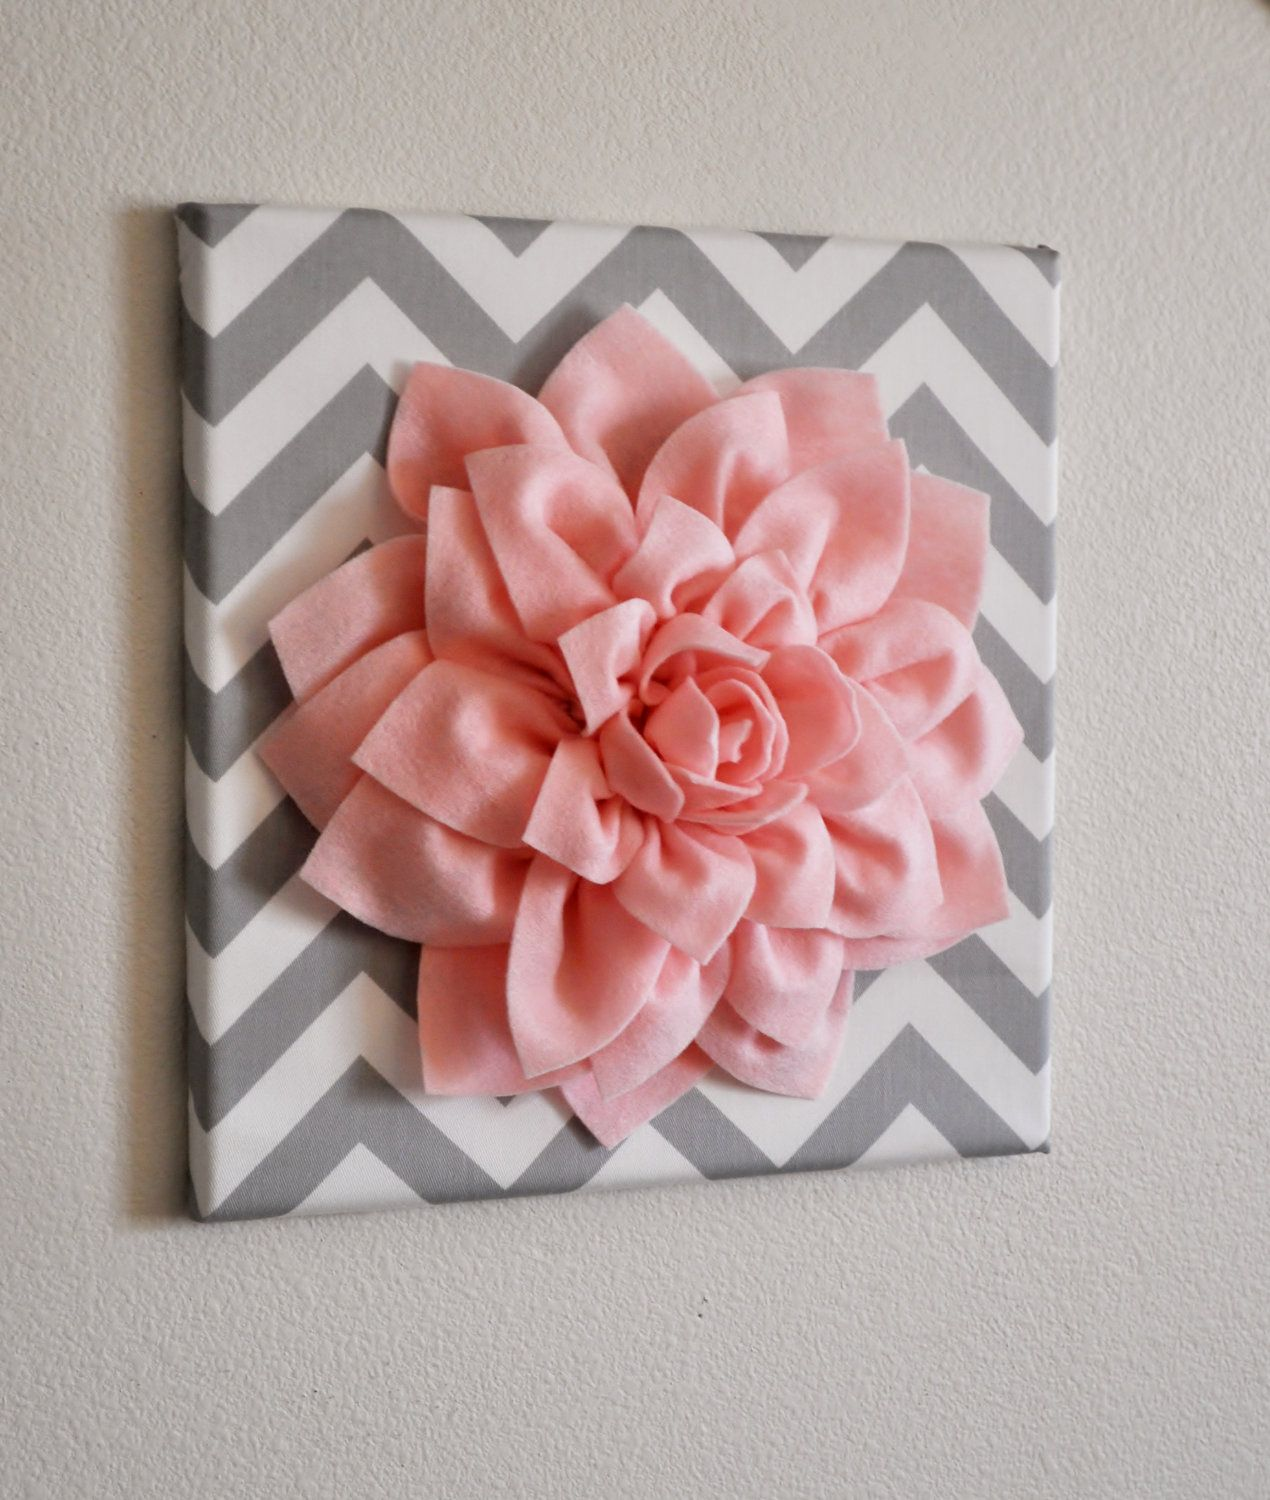 3D flower on canvas